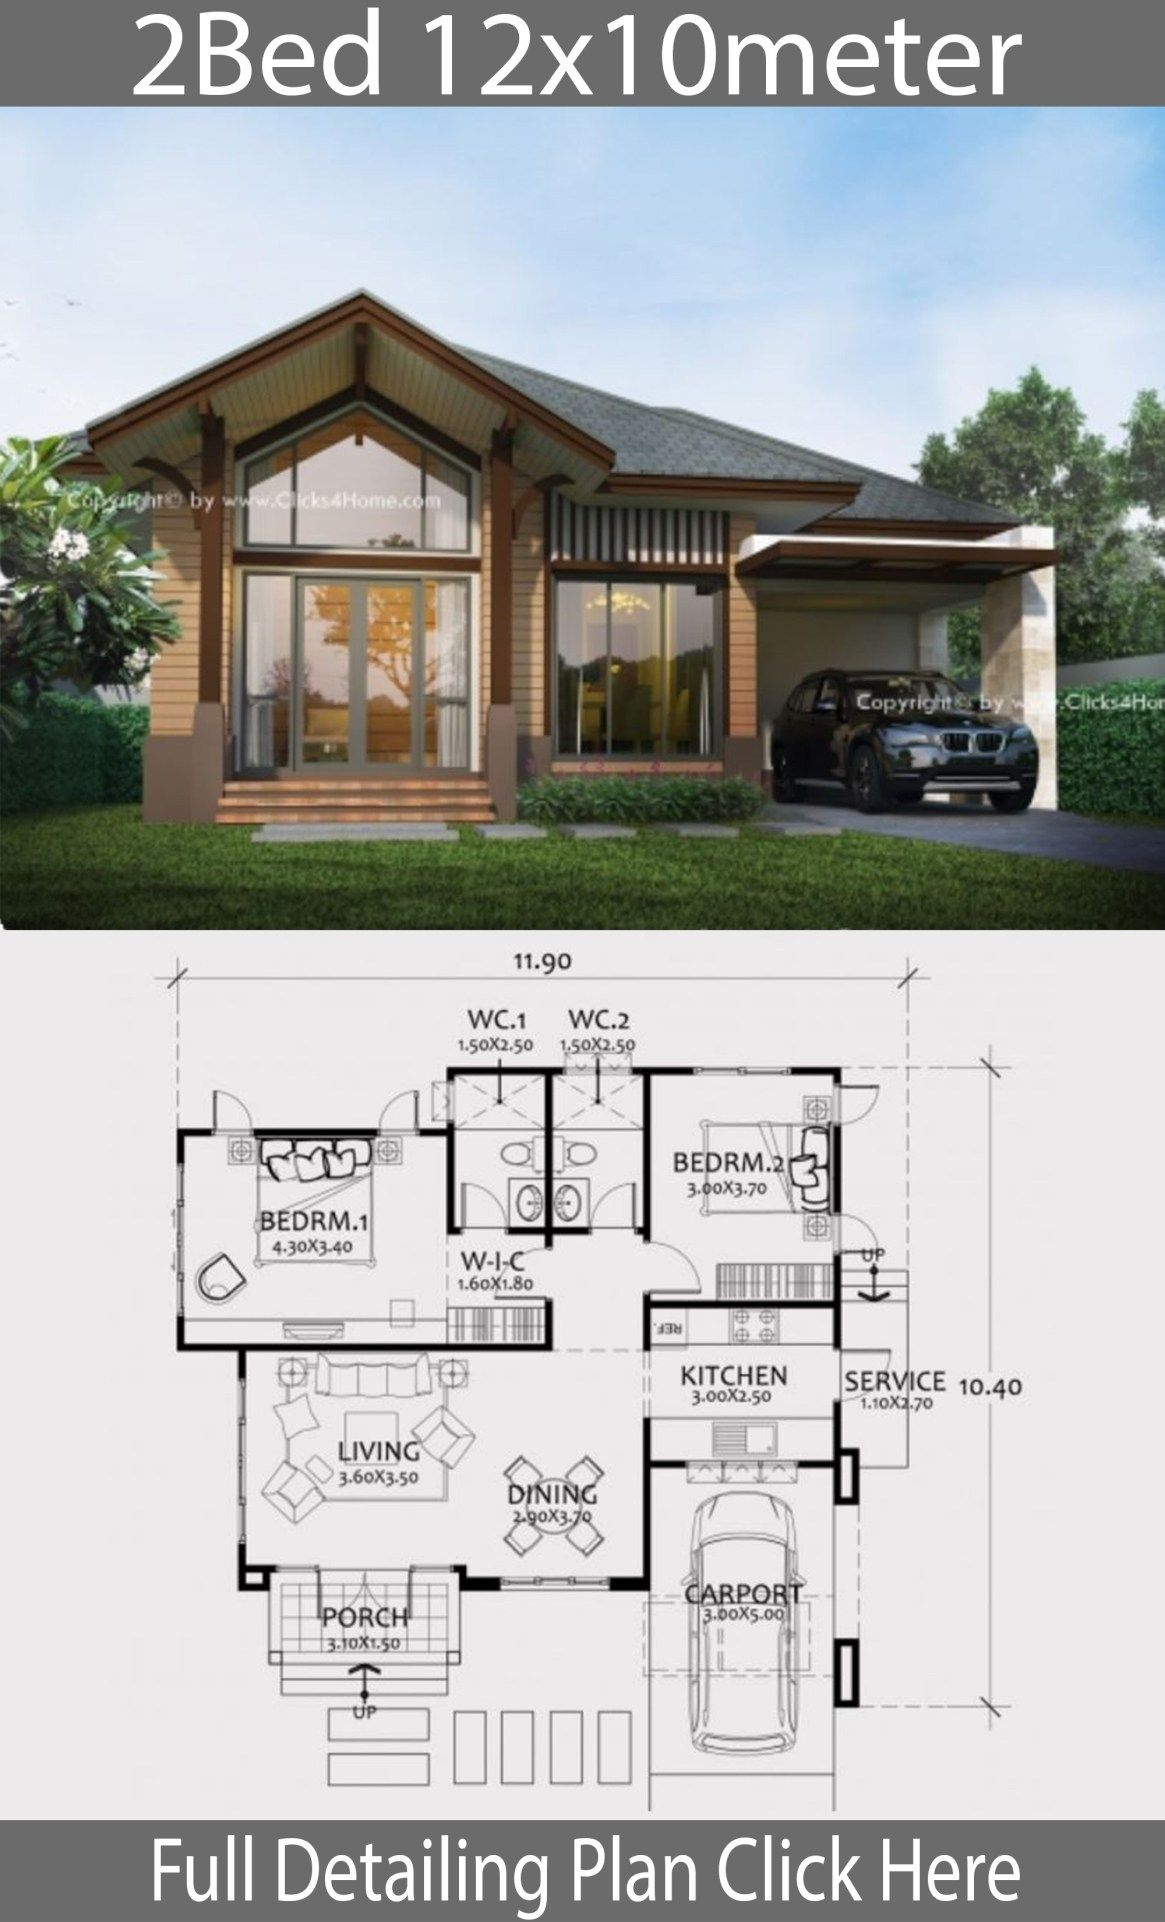 Home Design Plan 12x10m With 2 Bedrooms Home Design With Plansearch Beautiful House Plans Architectural House Plans Small House Design Plans